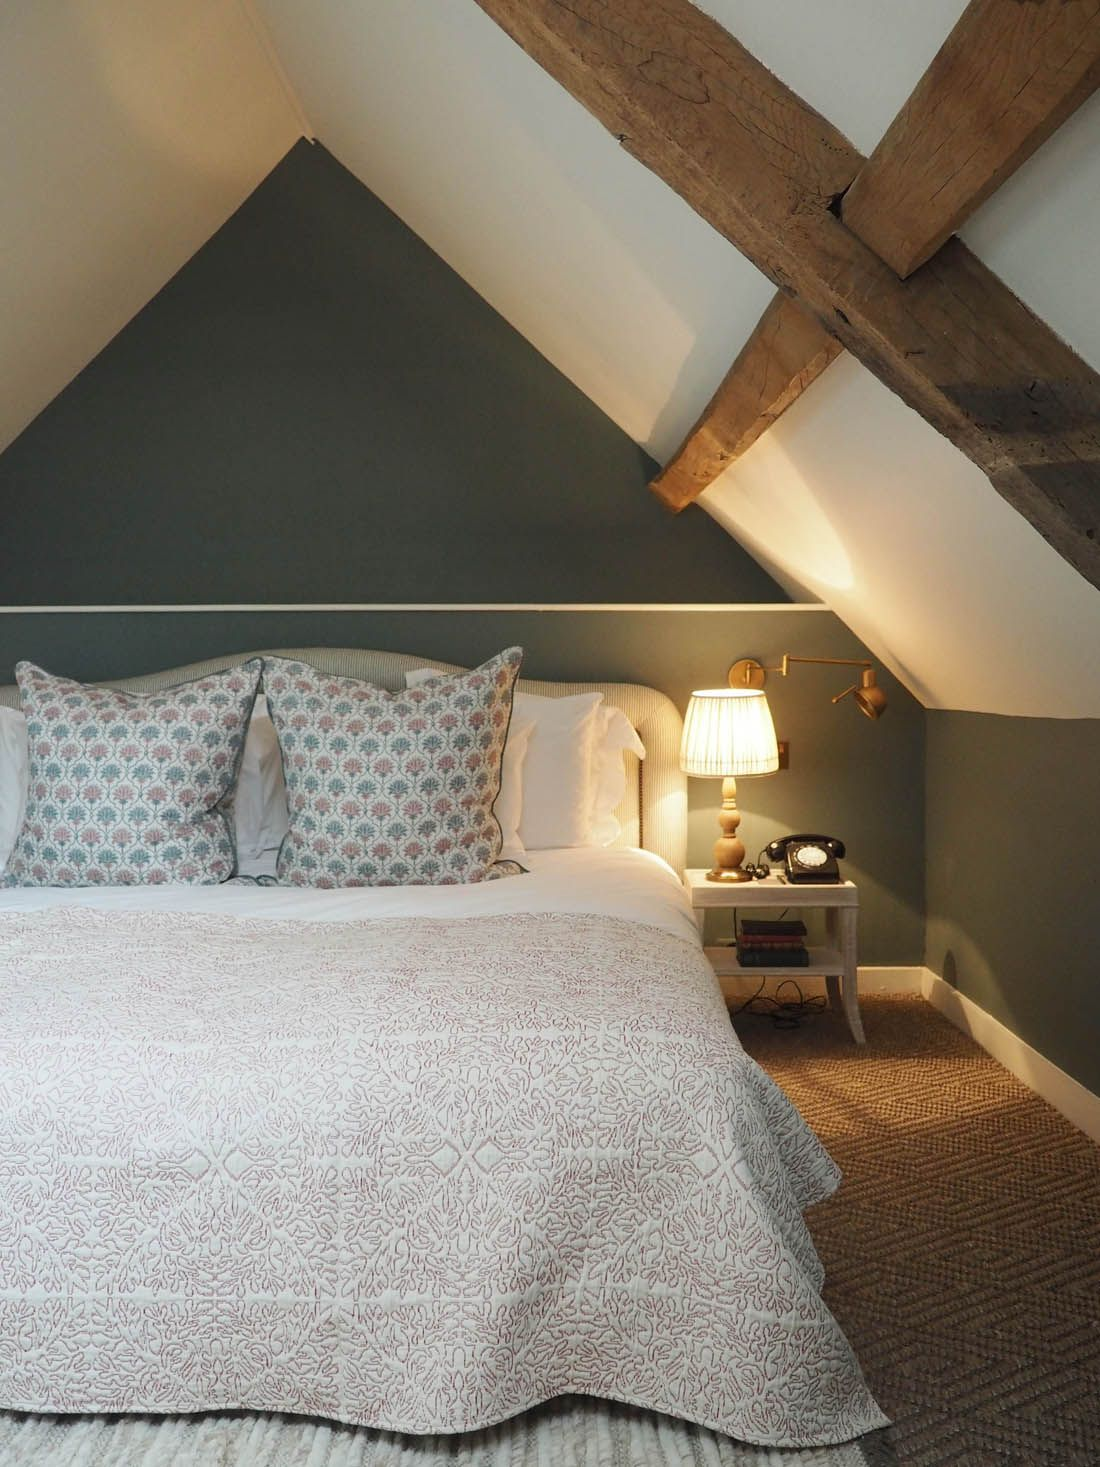 Offset window behind bed  a long weekend at babington house  traditional interiors  country